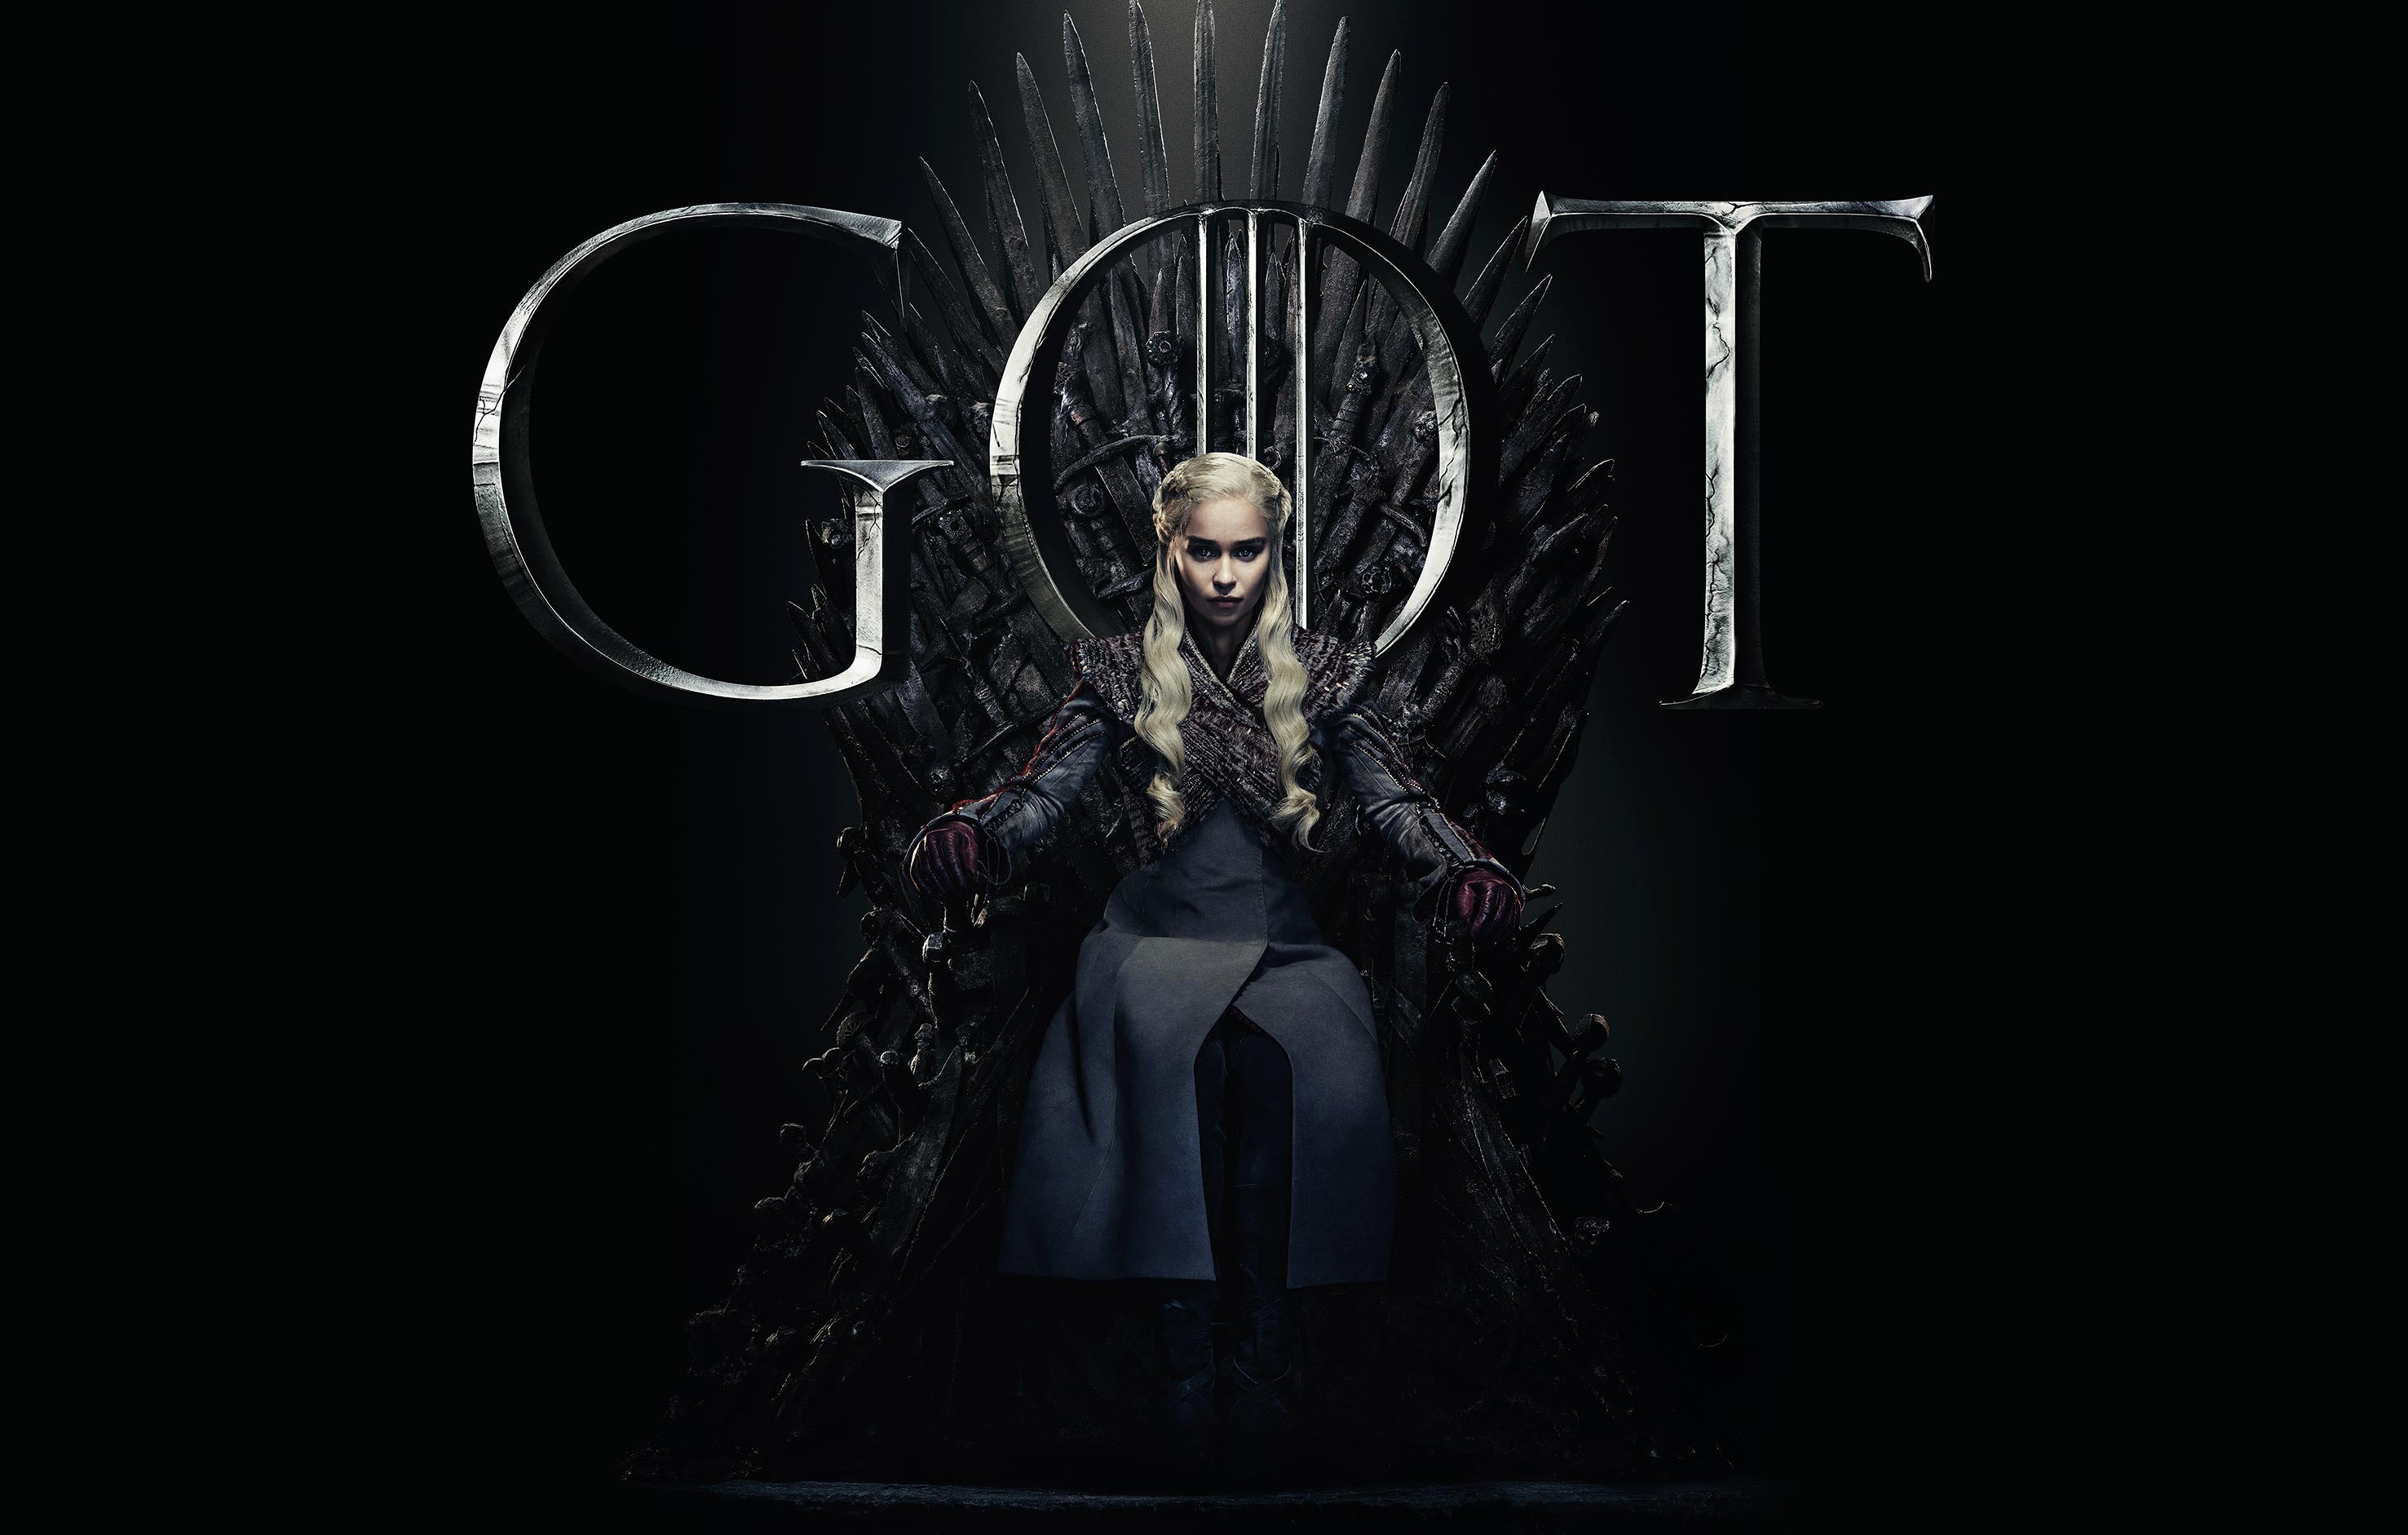 Daenerys Targaryen Iron Throne GOT Game Of Thrones Season 8 Episode 1